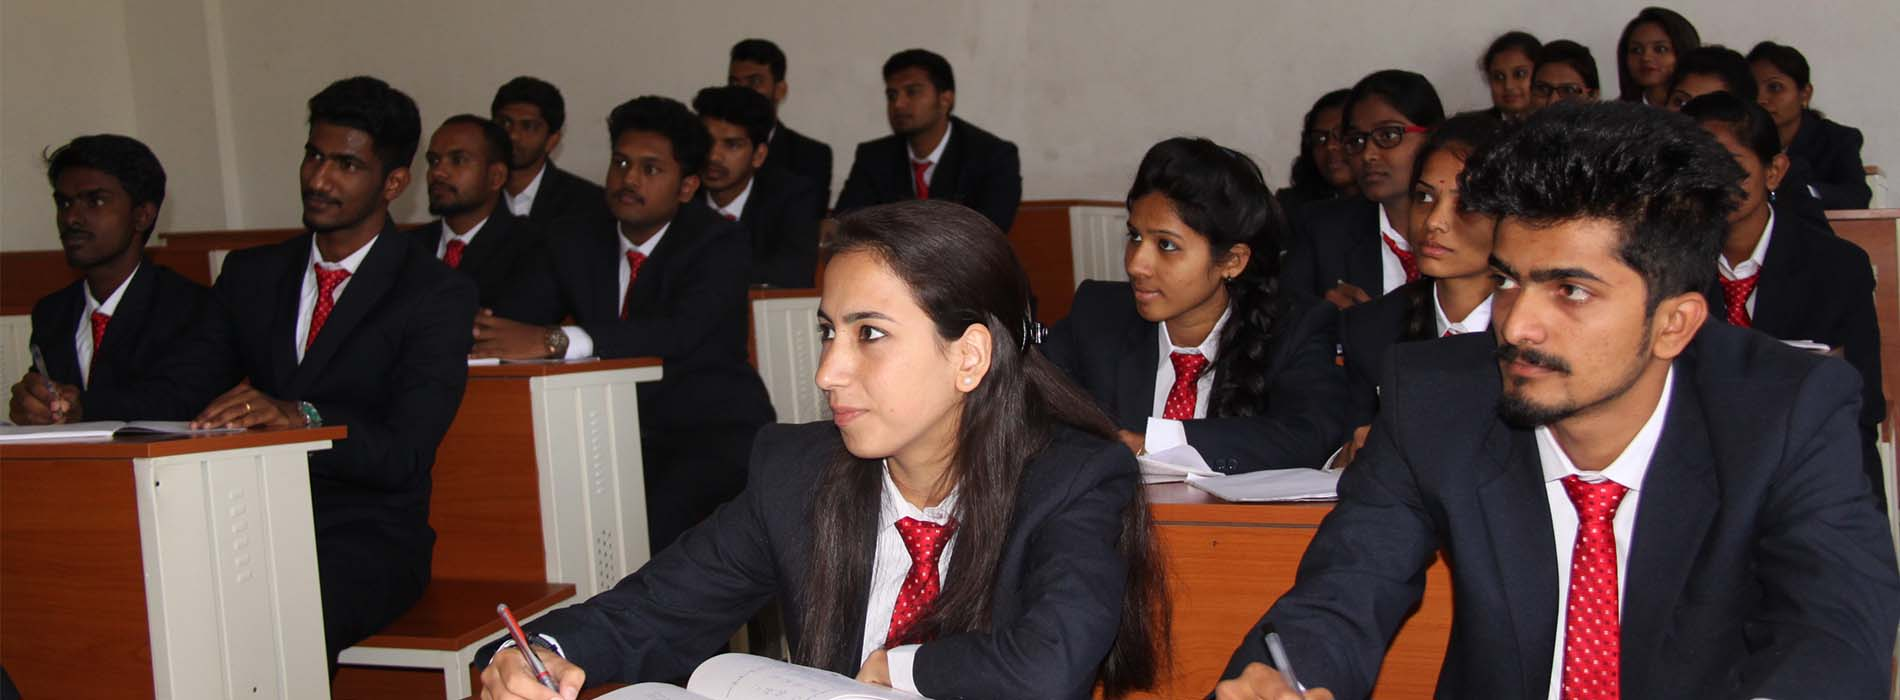 Why Bangalore is considered a Hot Location to Pursue an MBA?